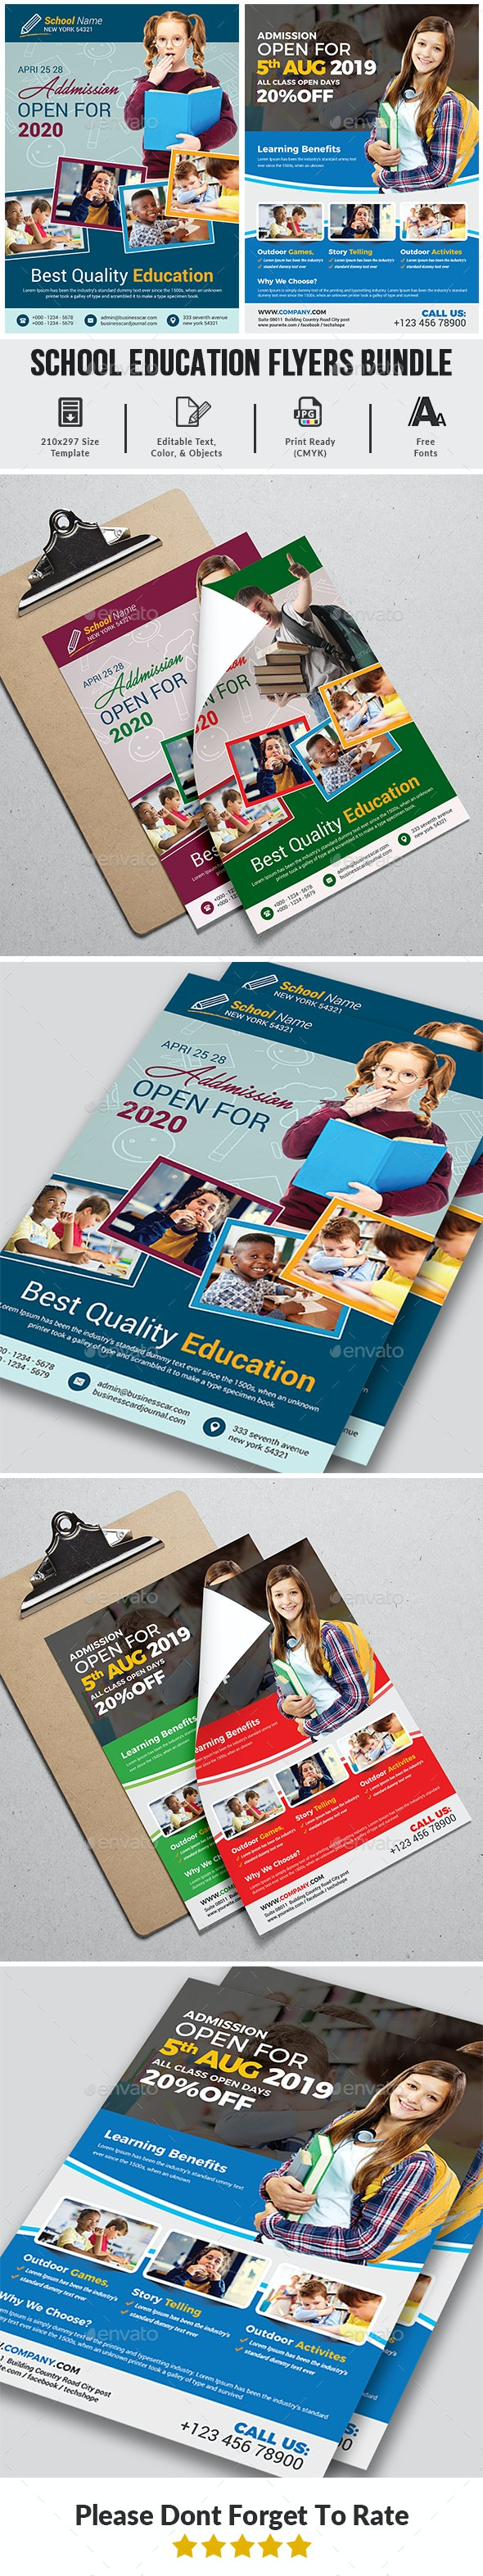 School Education Flyers Bundle Templates - Corporate Flyers